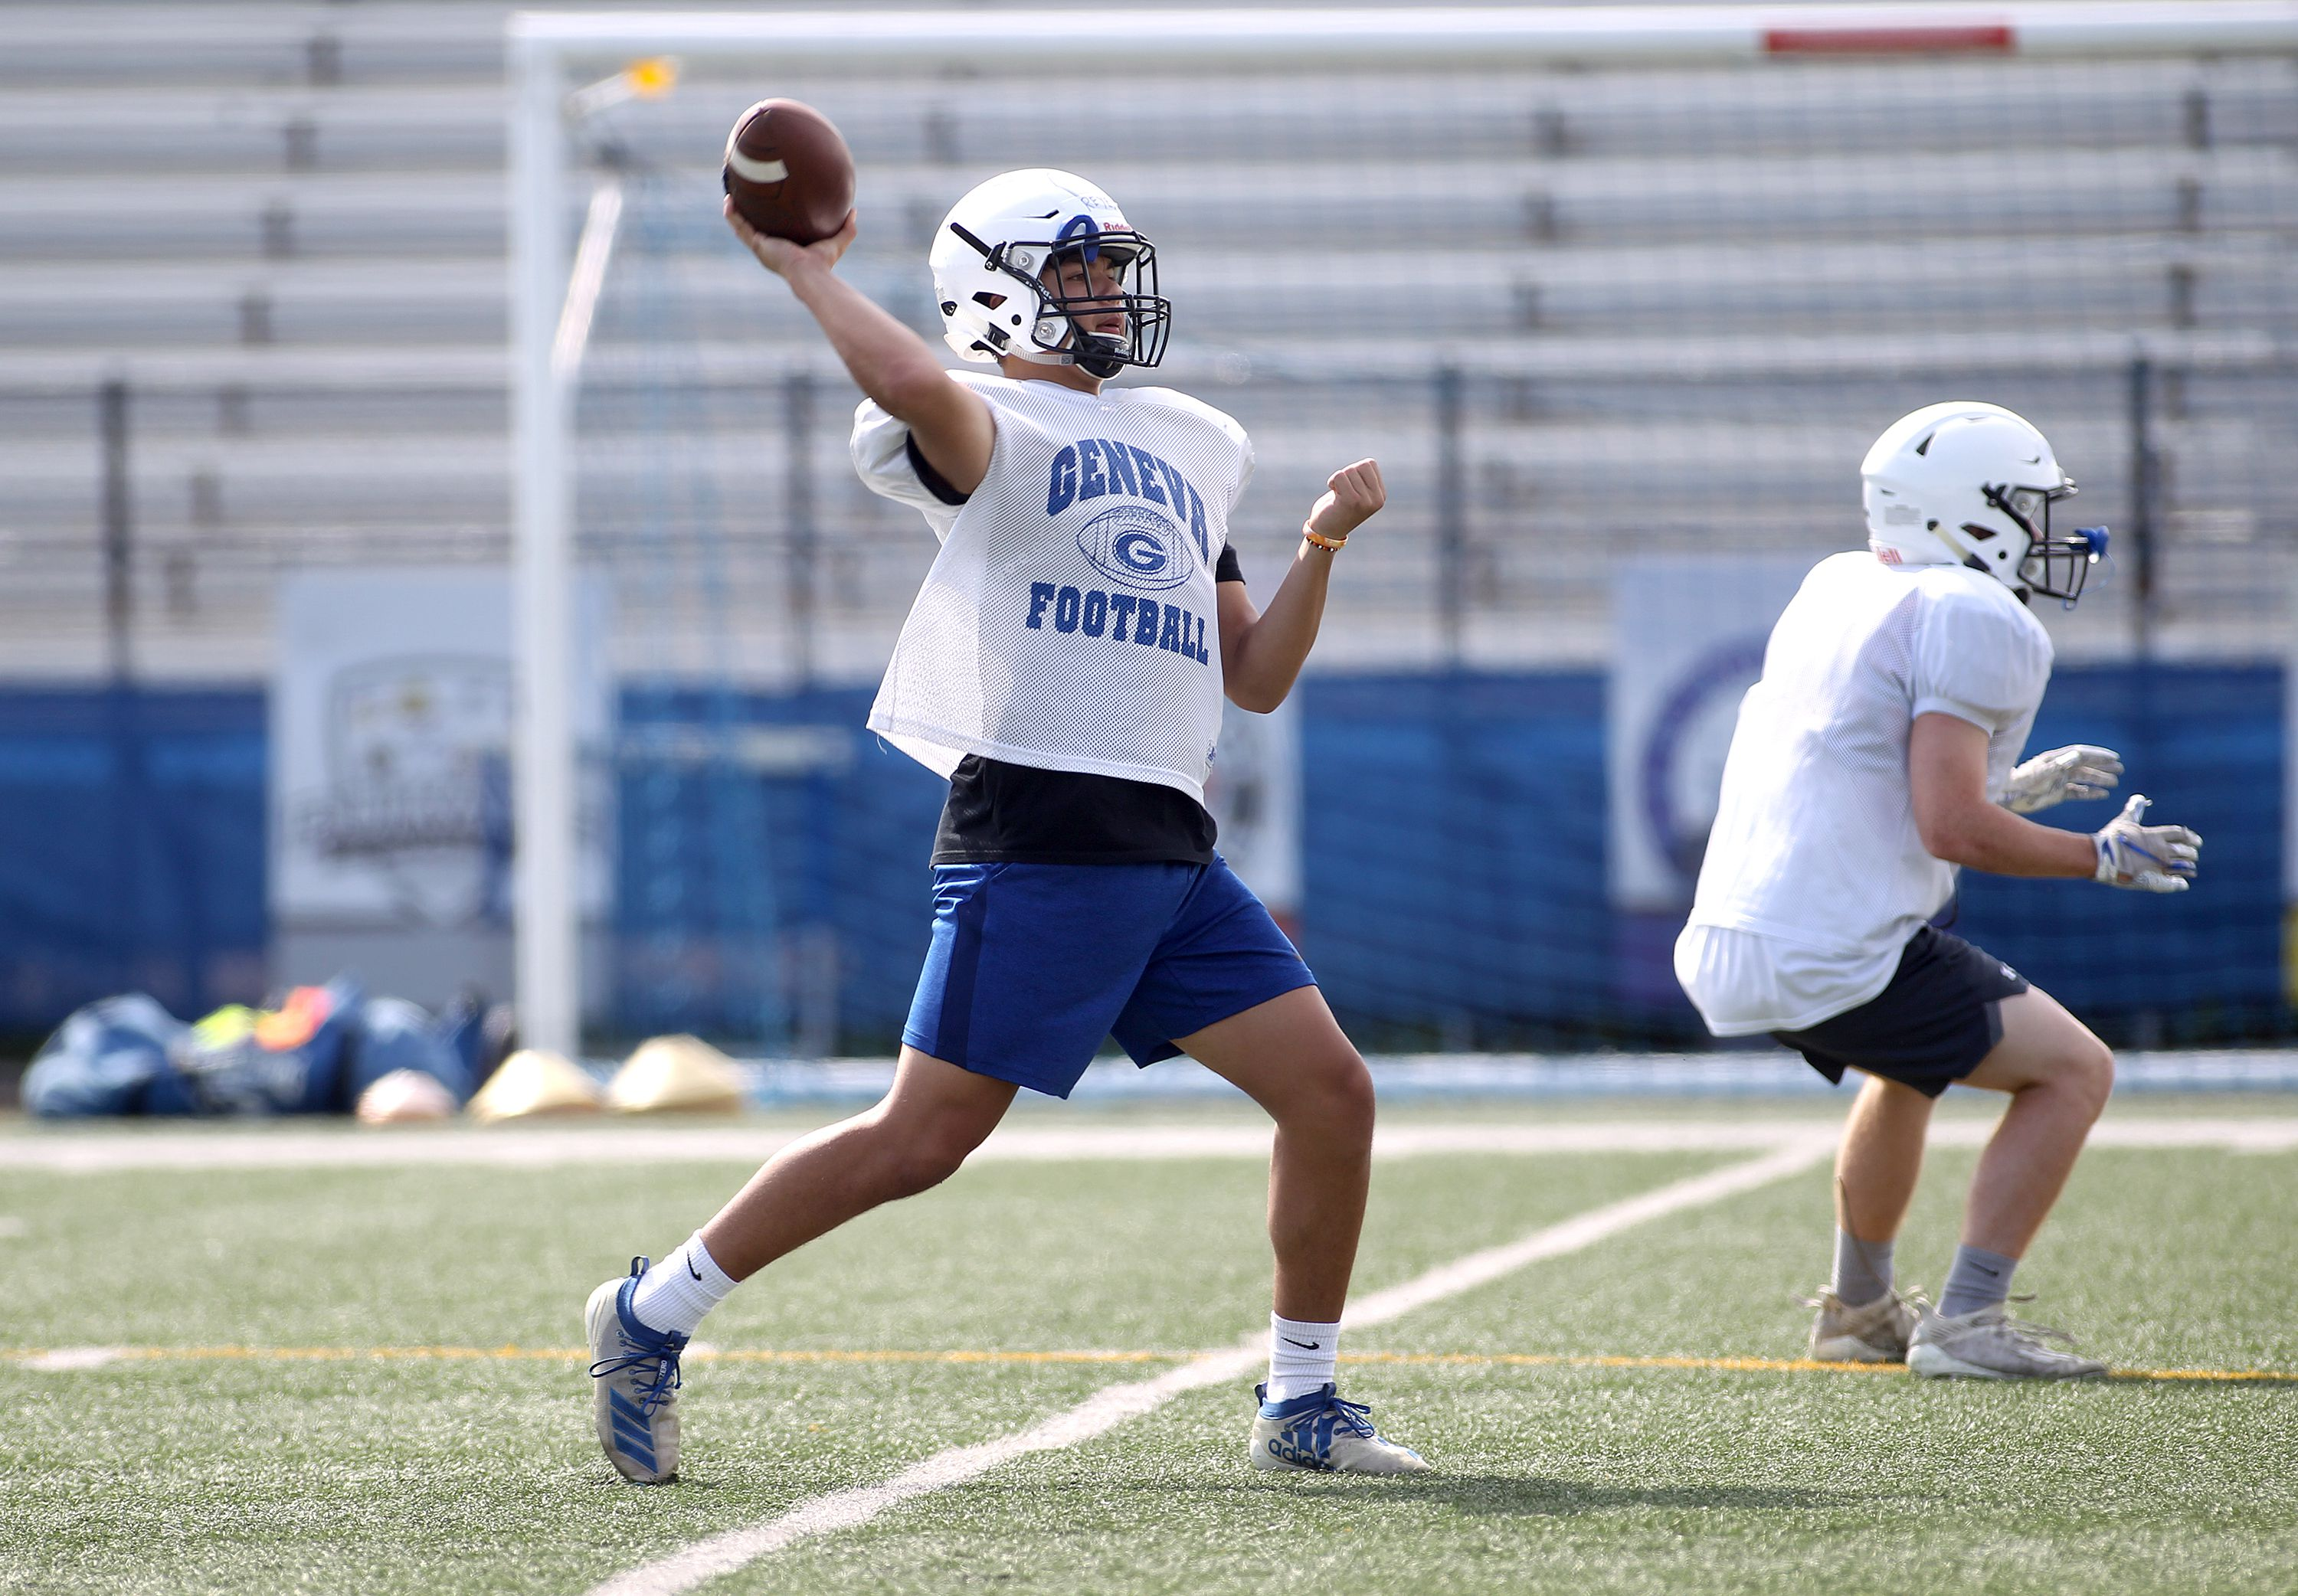 Geneva's Jackson Reyes throws the ball during a practice session at the school on Friday, July 9, 2021.